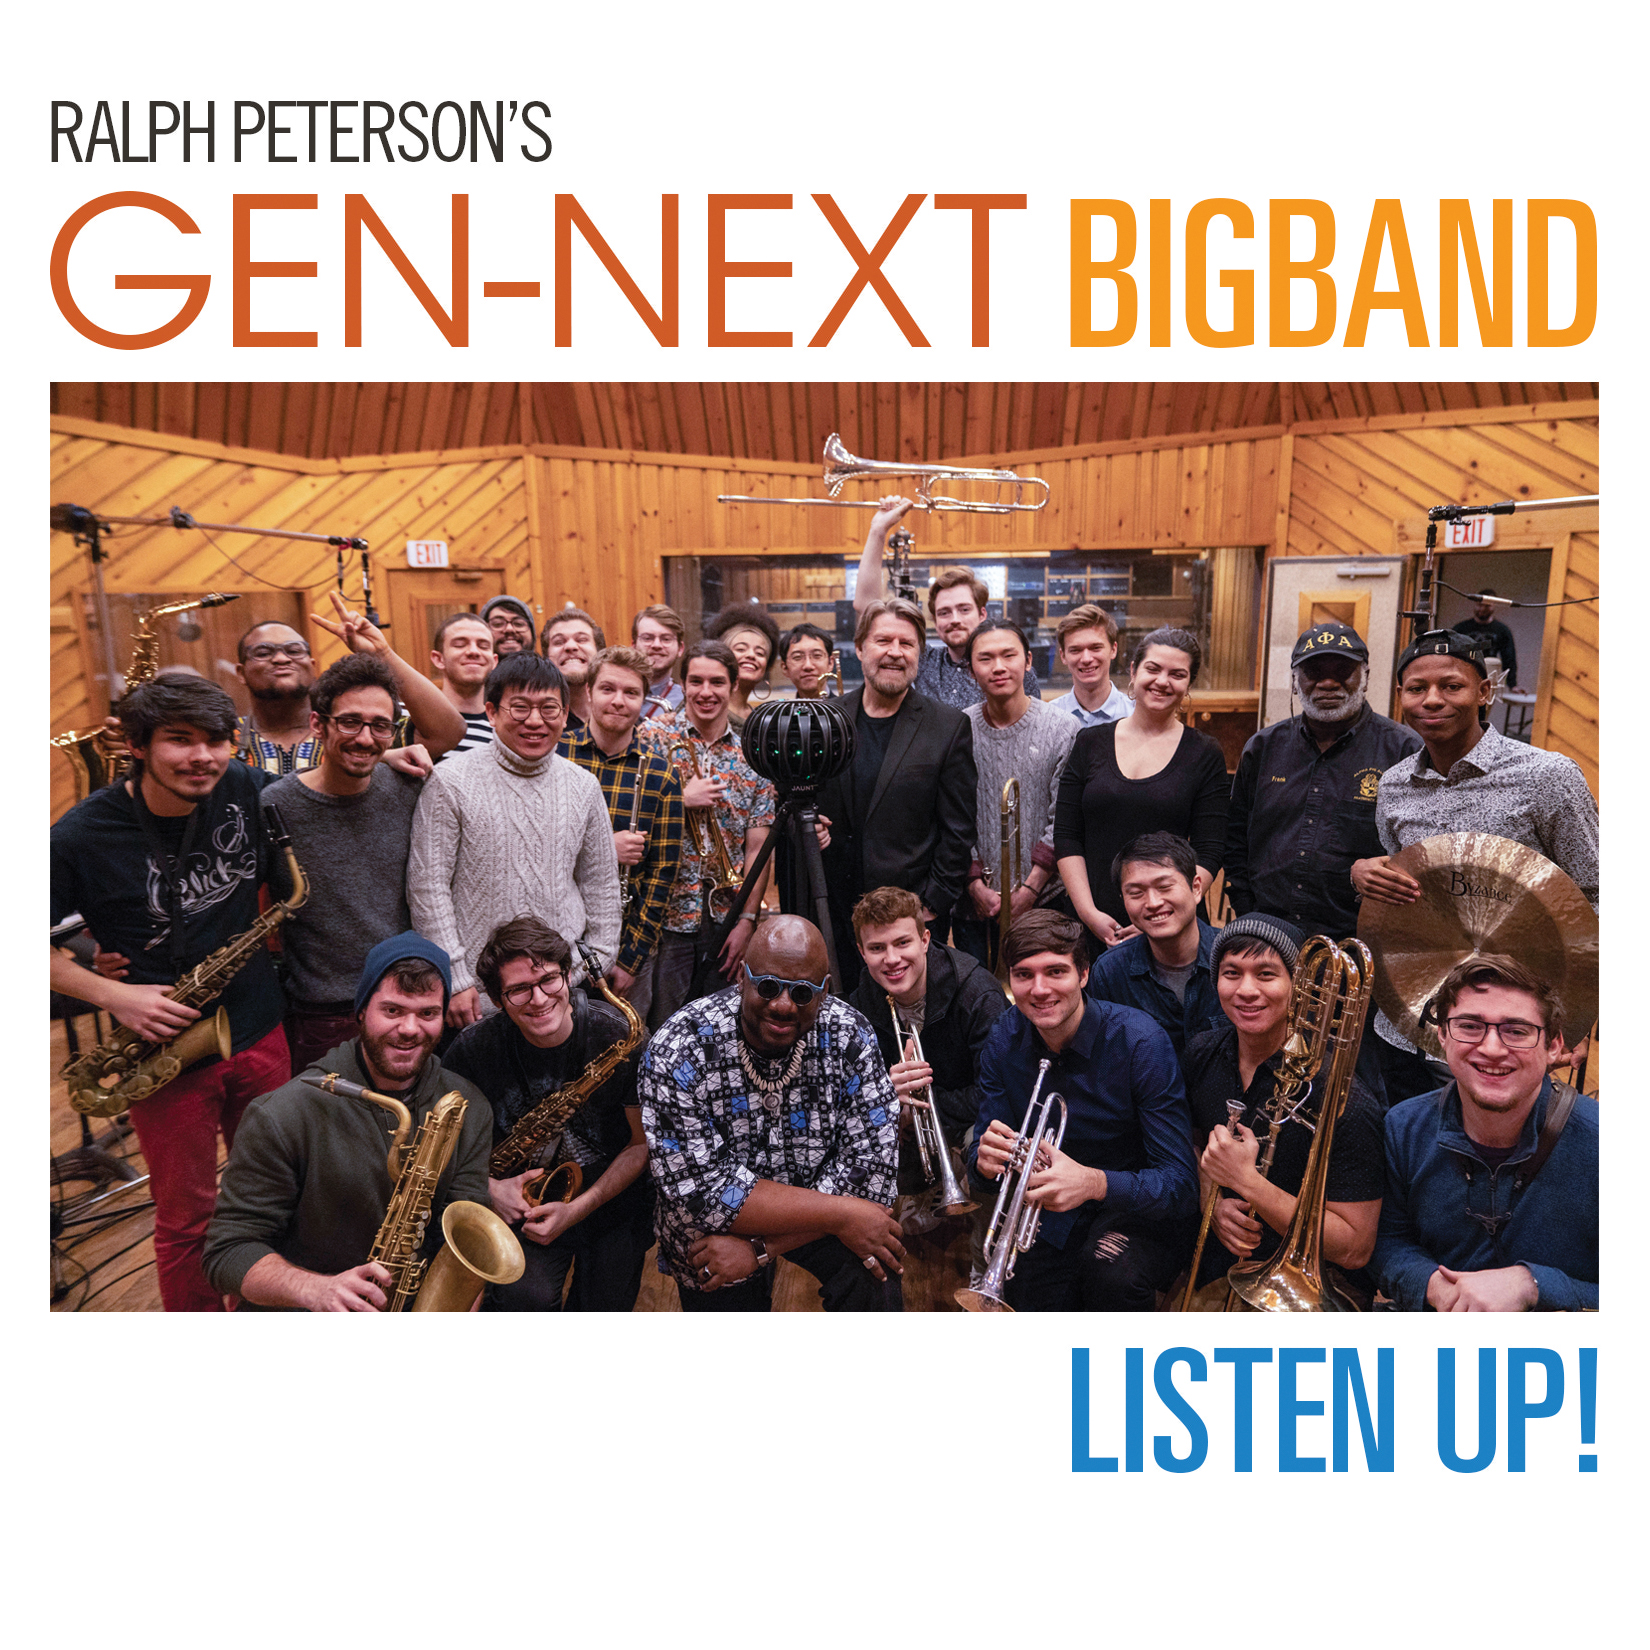 JAZZ ALBUM OF THE WEEK: WRTI Chooses LISTEN UP by Ralph Peterson and the GenNext Big Band